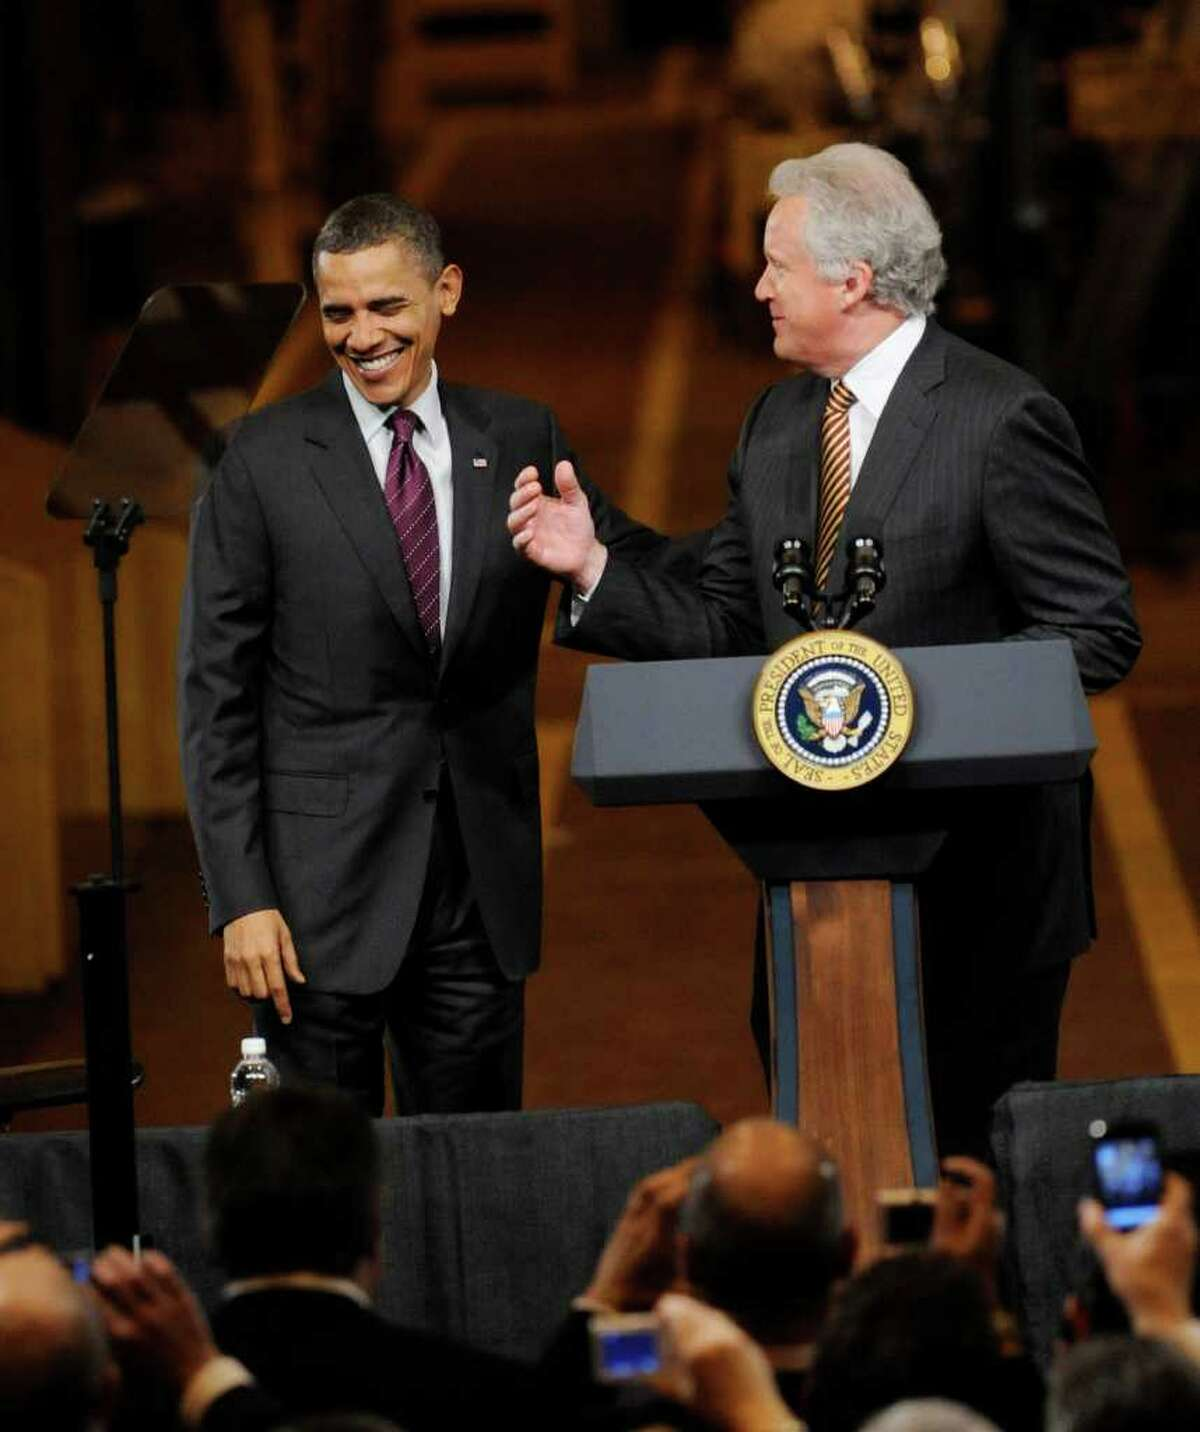 President Barak Obama enjoys a light moment with GE CEO Jeffrey Immelt before he spoke to a gathering of workers and dignitaries at the GE plant in Schenectady January 21, 2011. (Skip Dickstein / Times Union)